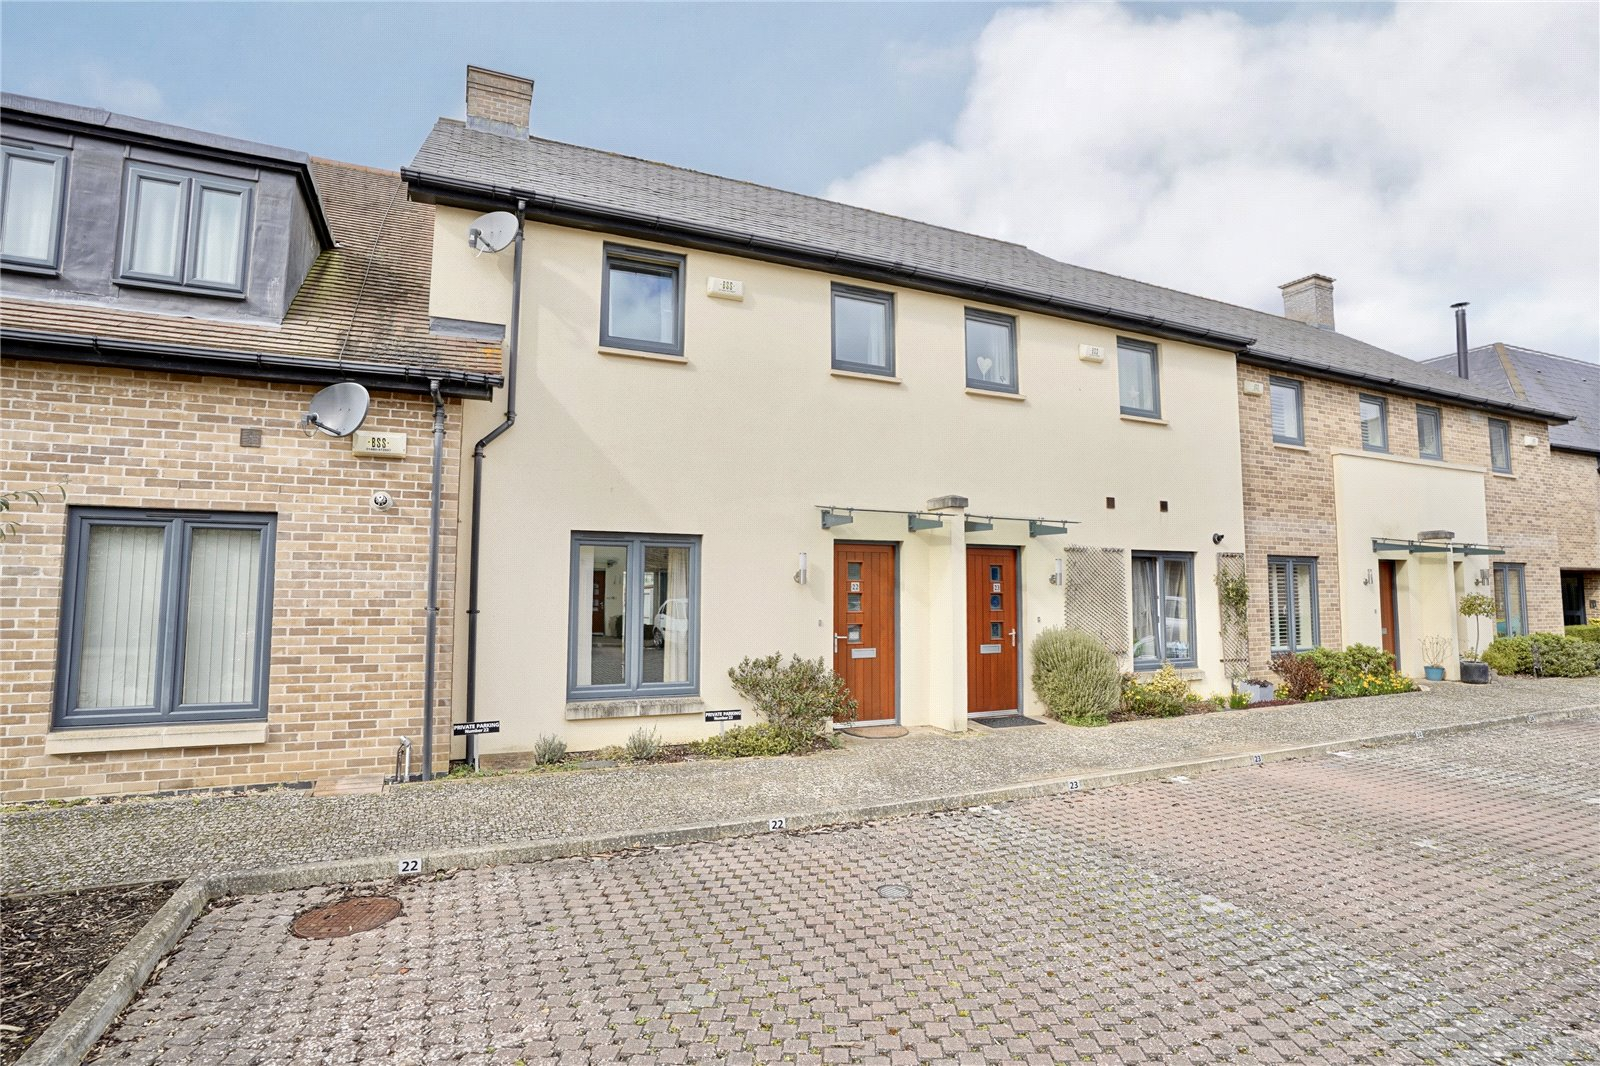 3 bed house for sale in Brampton, PE28 4QR - Property Image 1